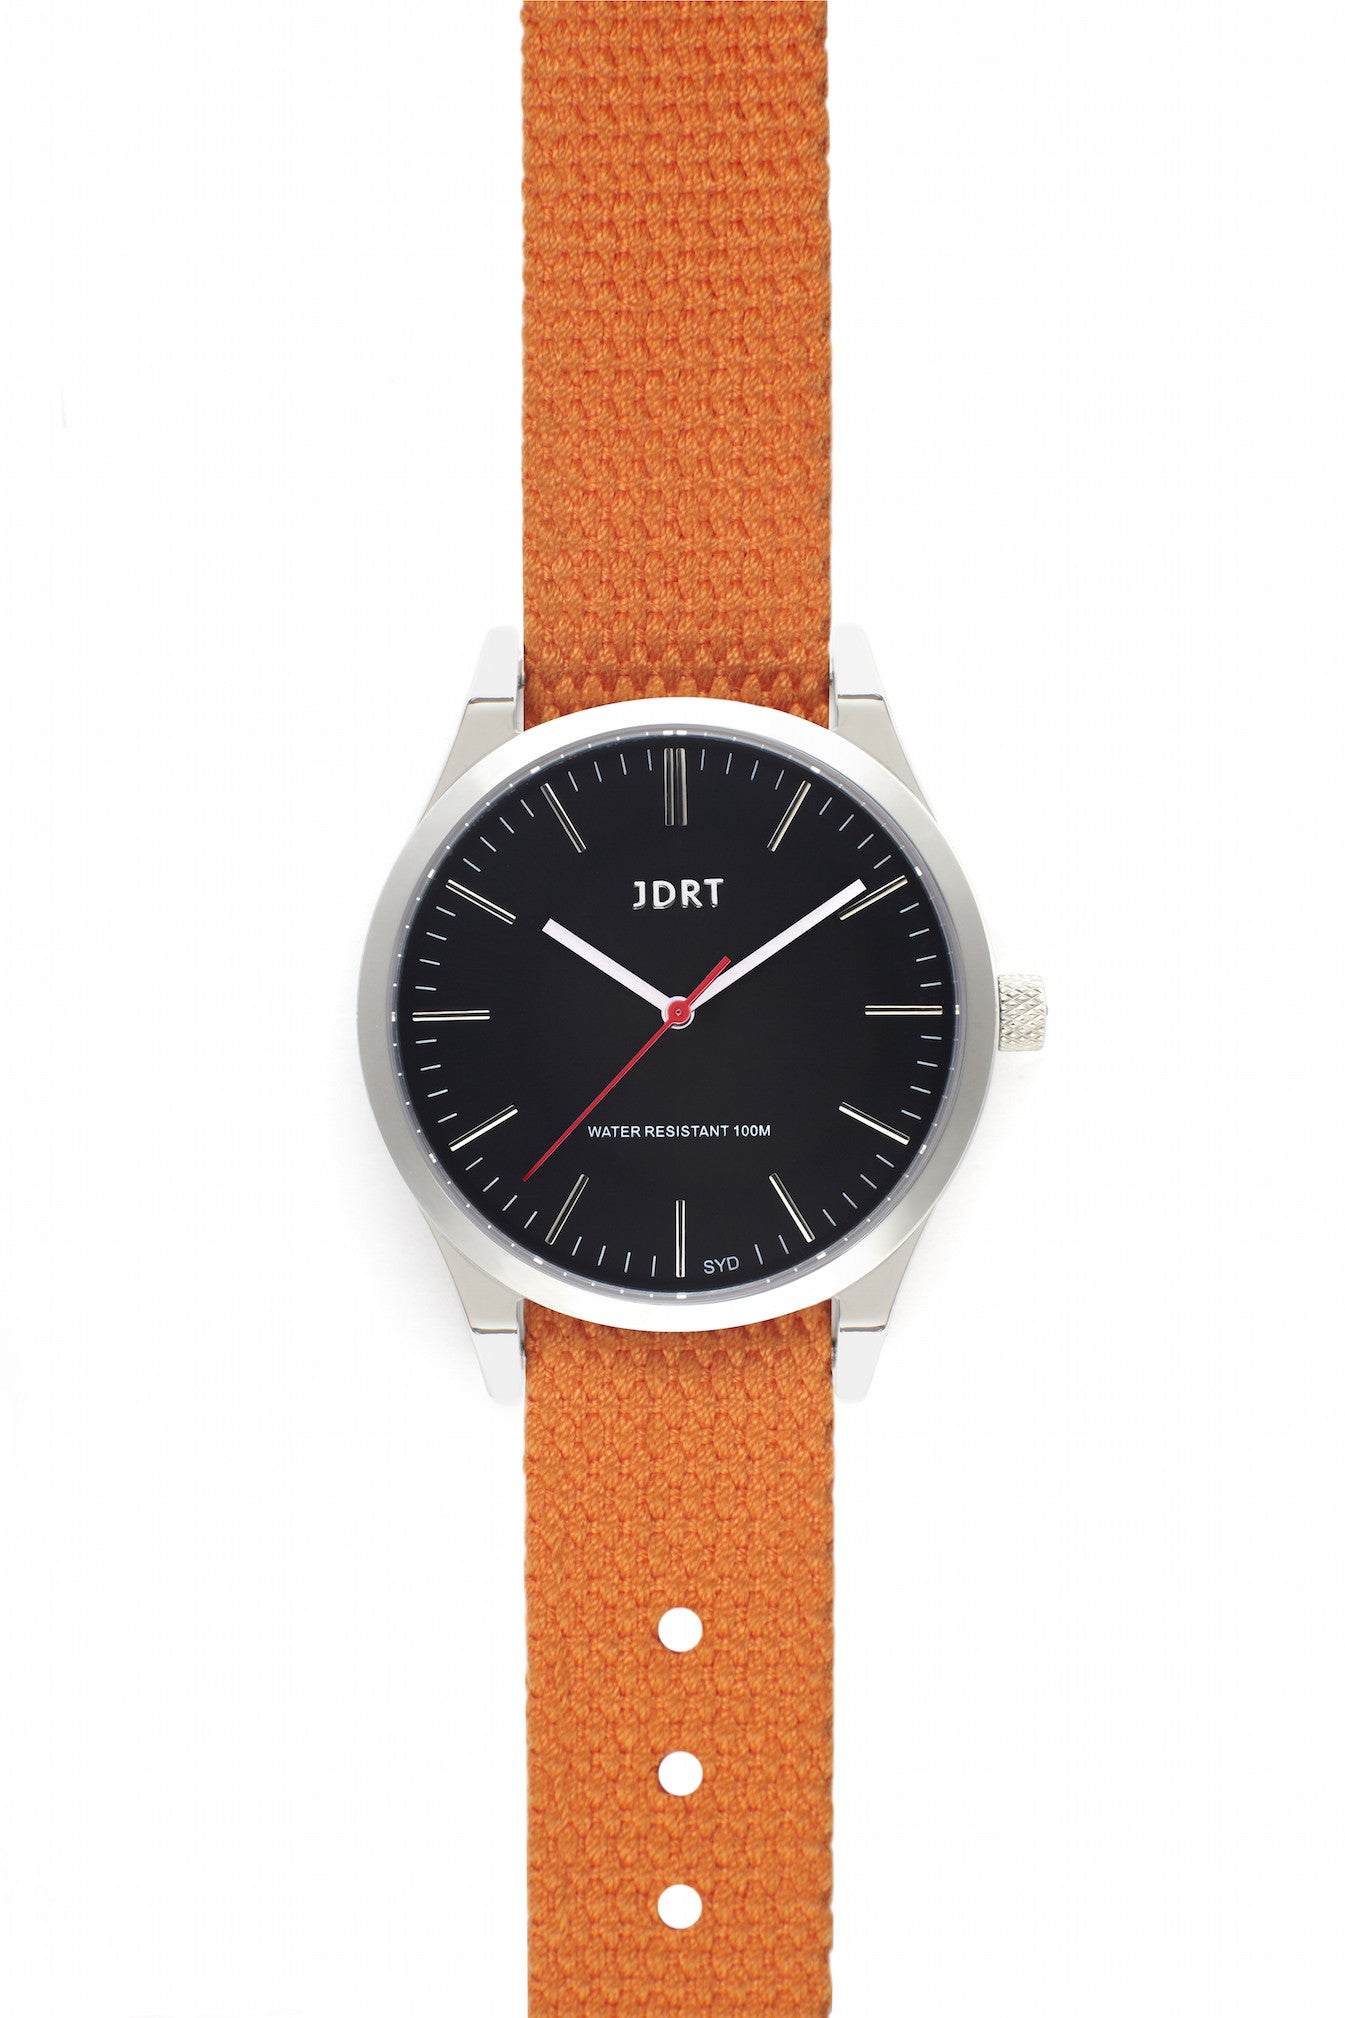 Jet Face with Hazard Canvas Watch Band